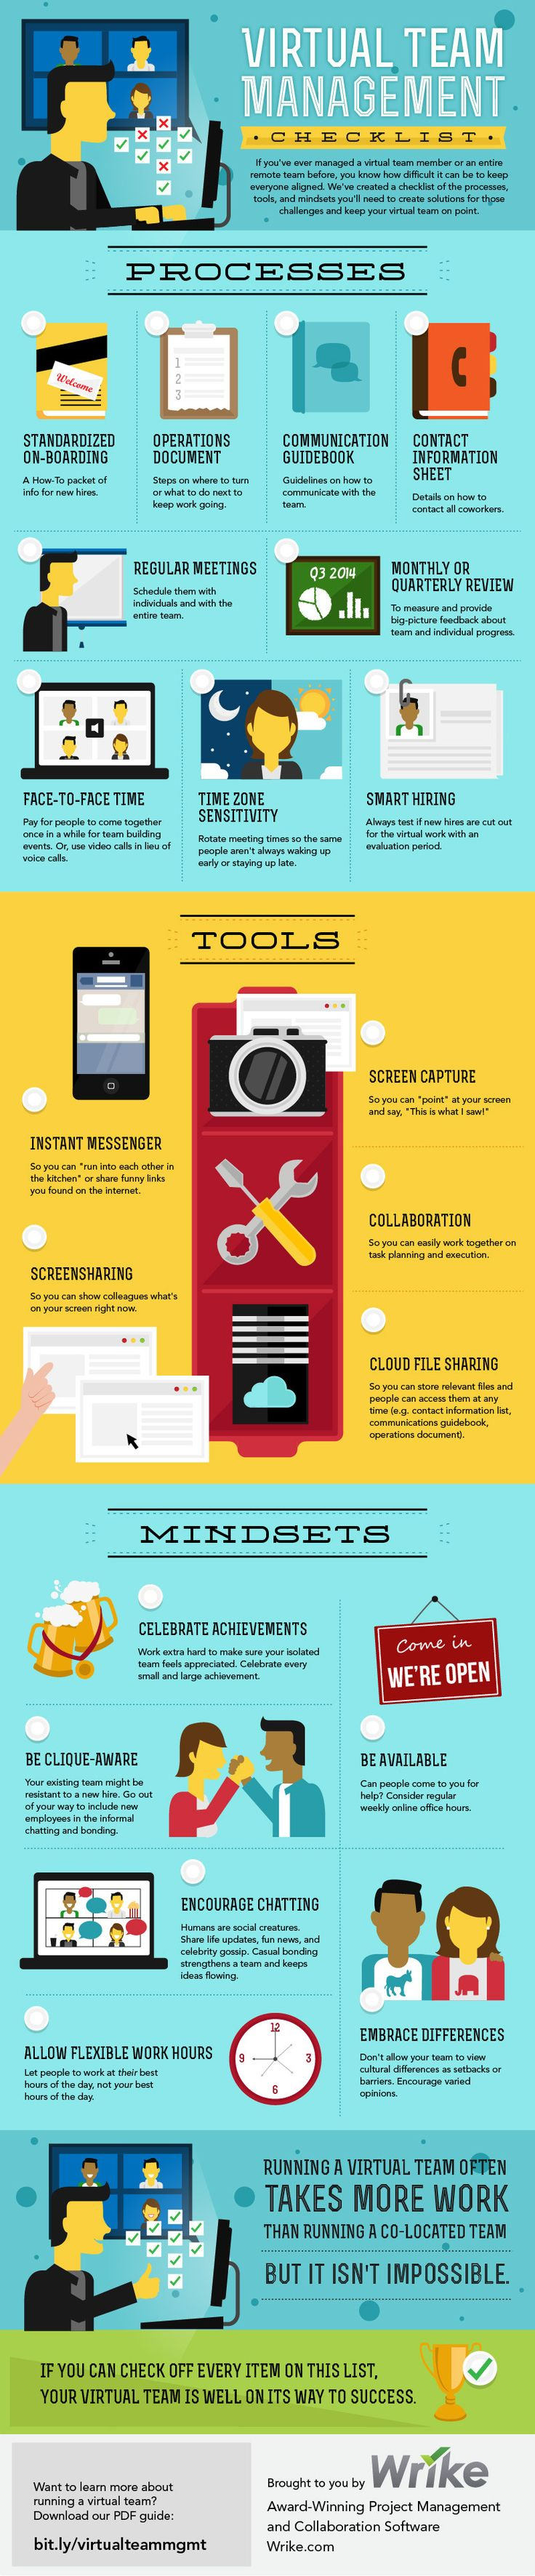 45 best video conference and audio video images on Pinterest | Audio ...